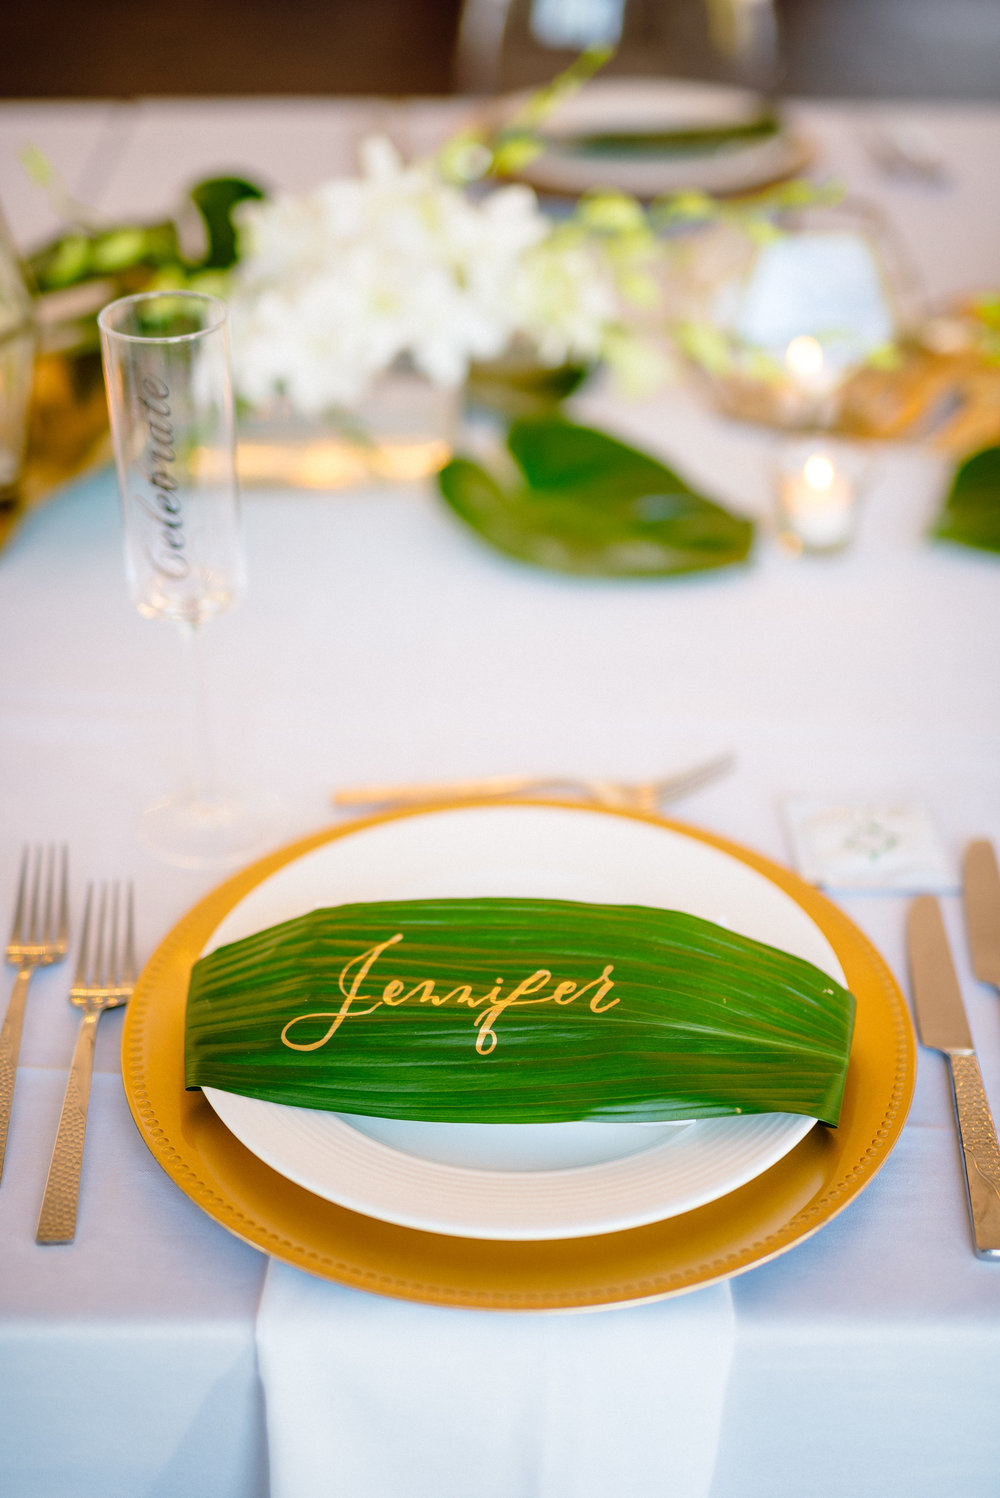 Beach place setting wedding photographer.jpg